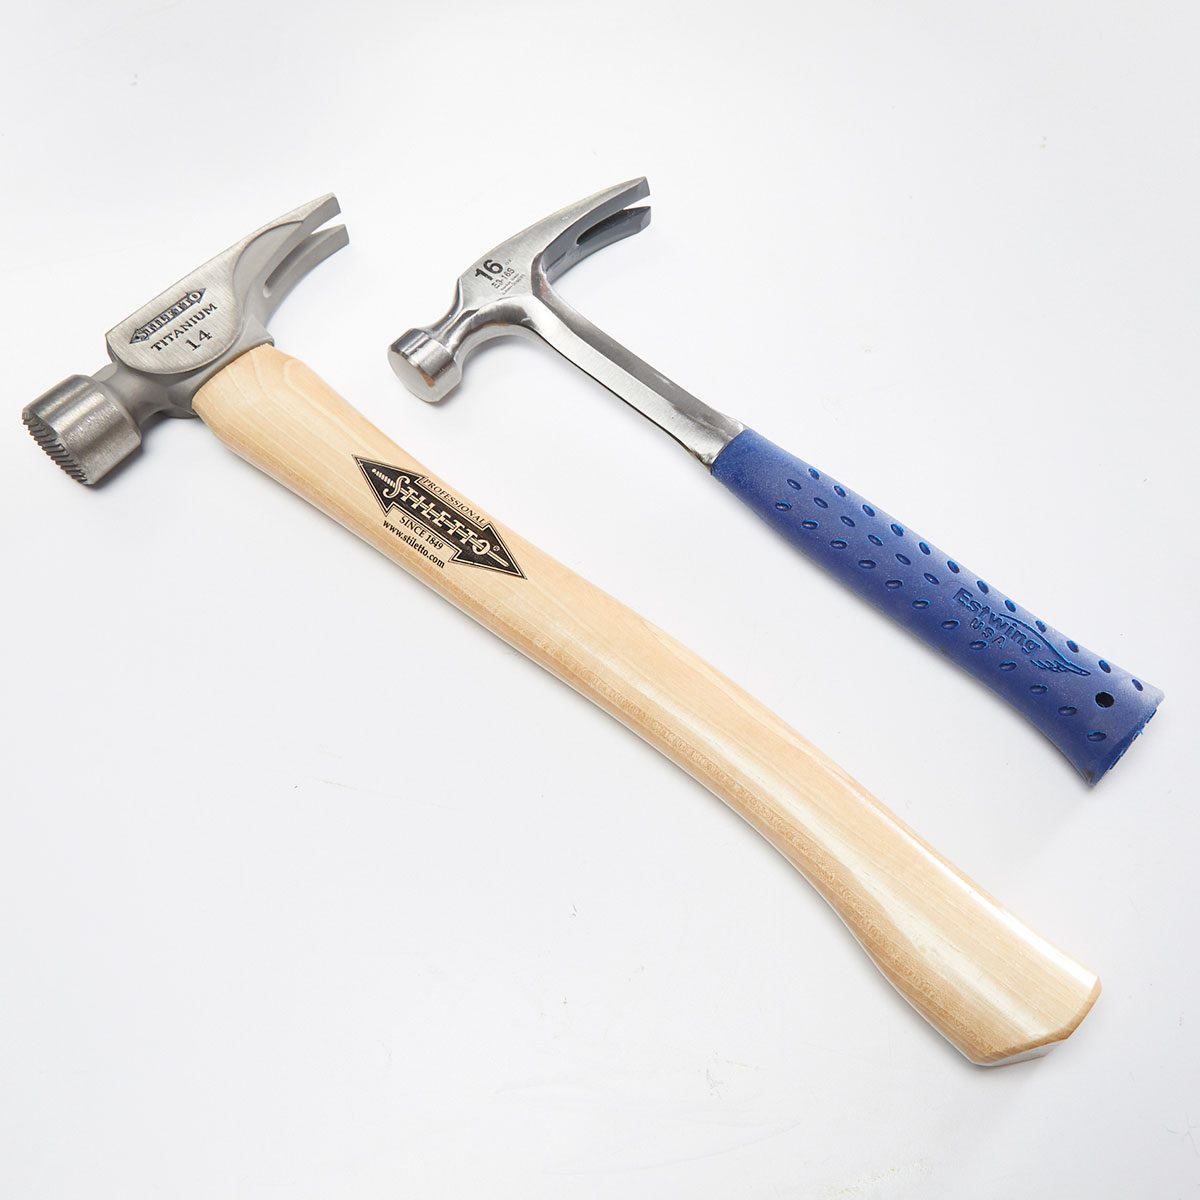 Two hammers with different handles   Construction Pro Tips